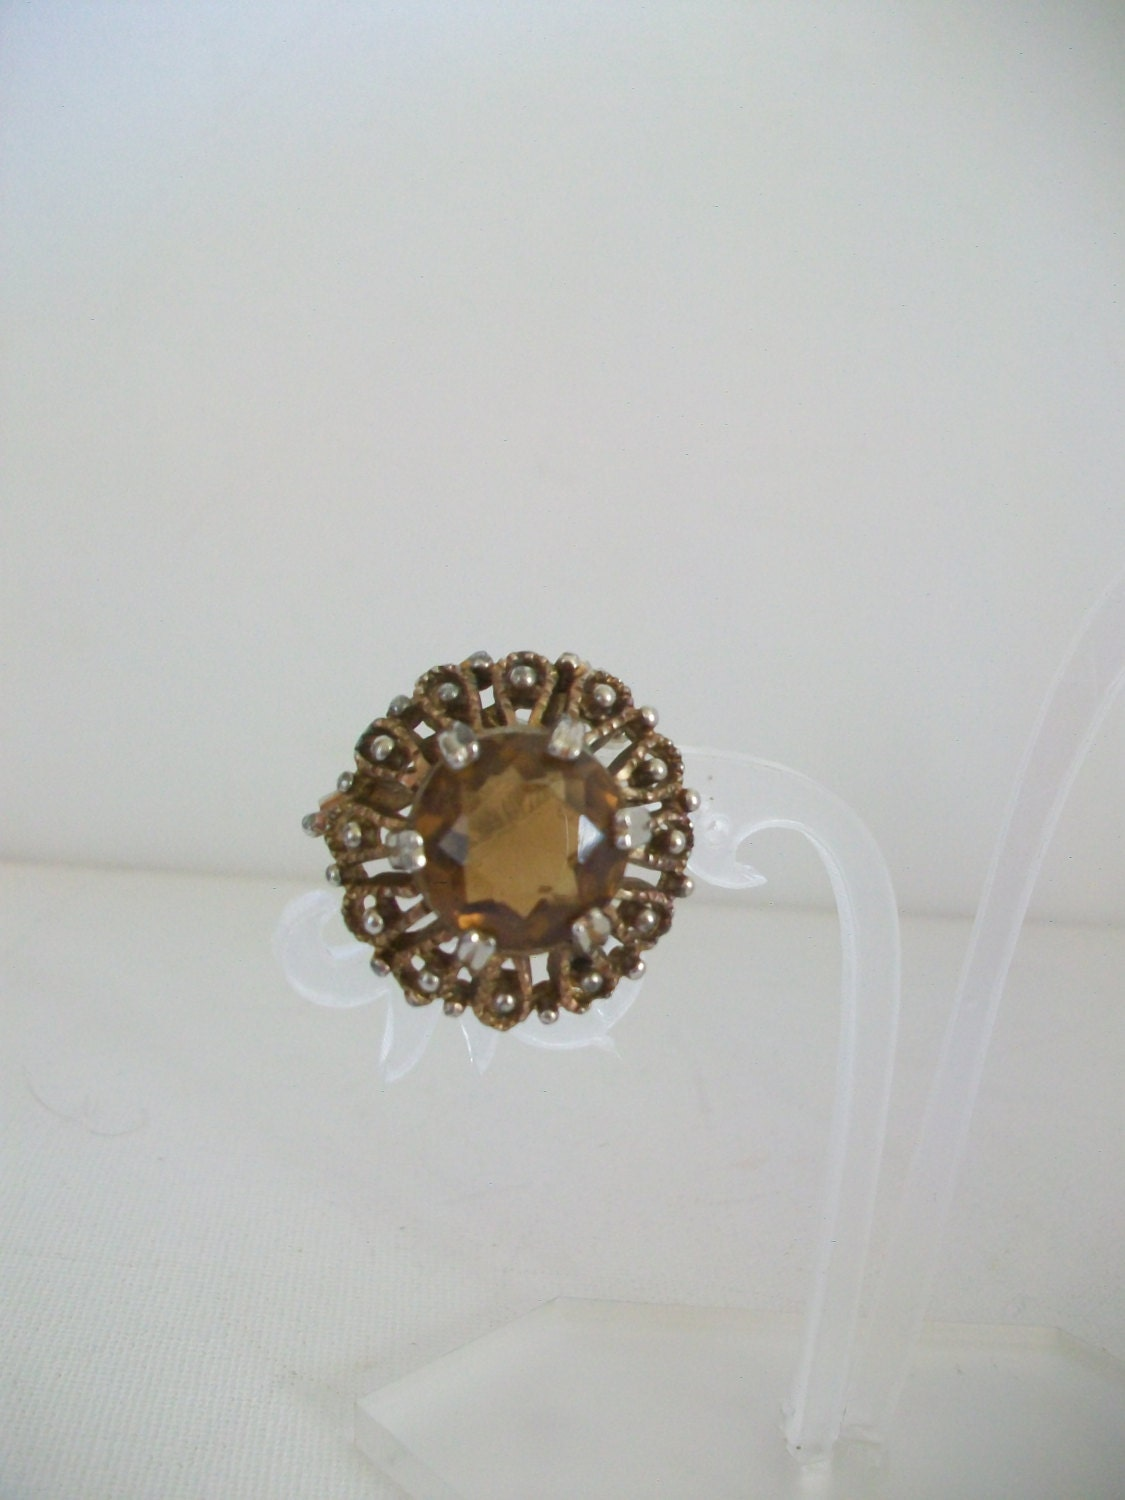 Art Deco Antique 1920s Brooch Pin with Fitting For Pendant